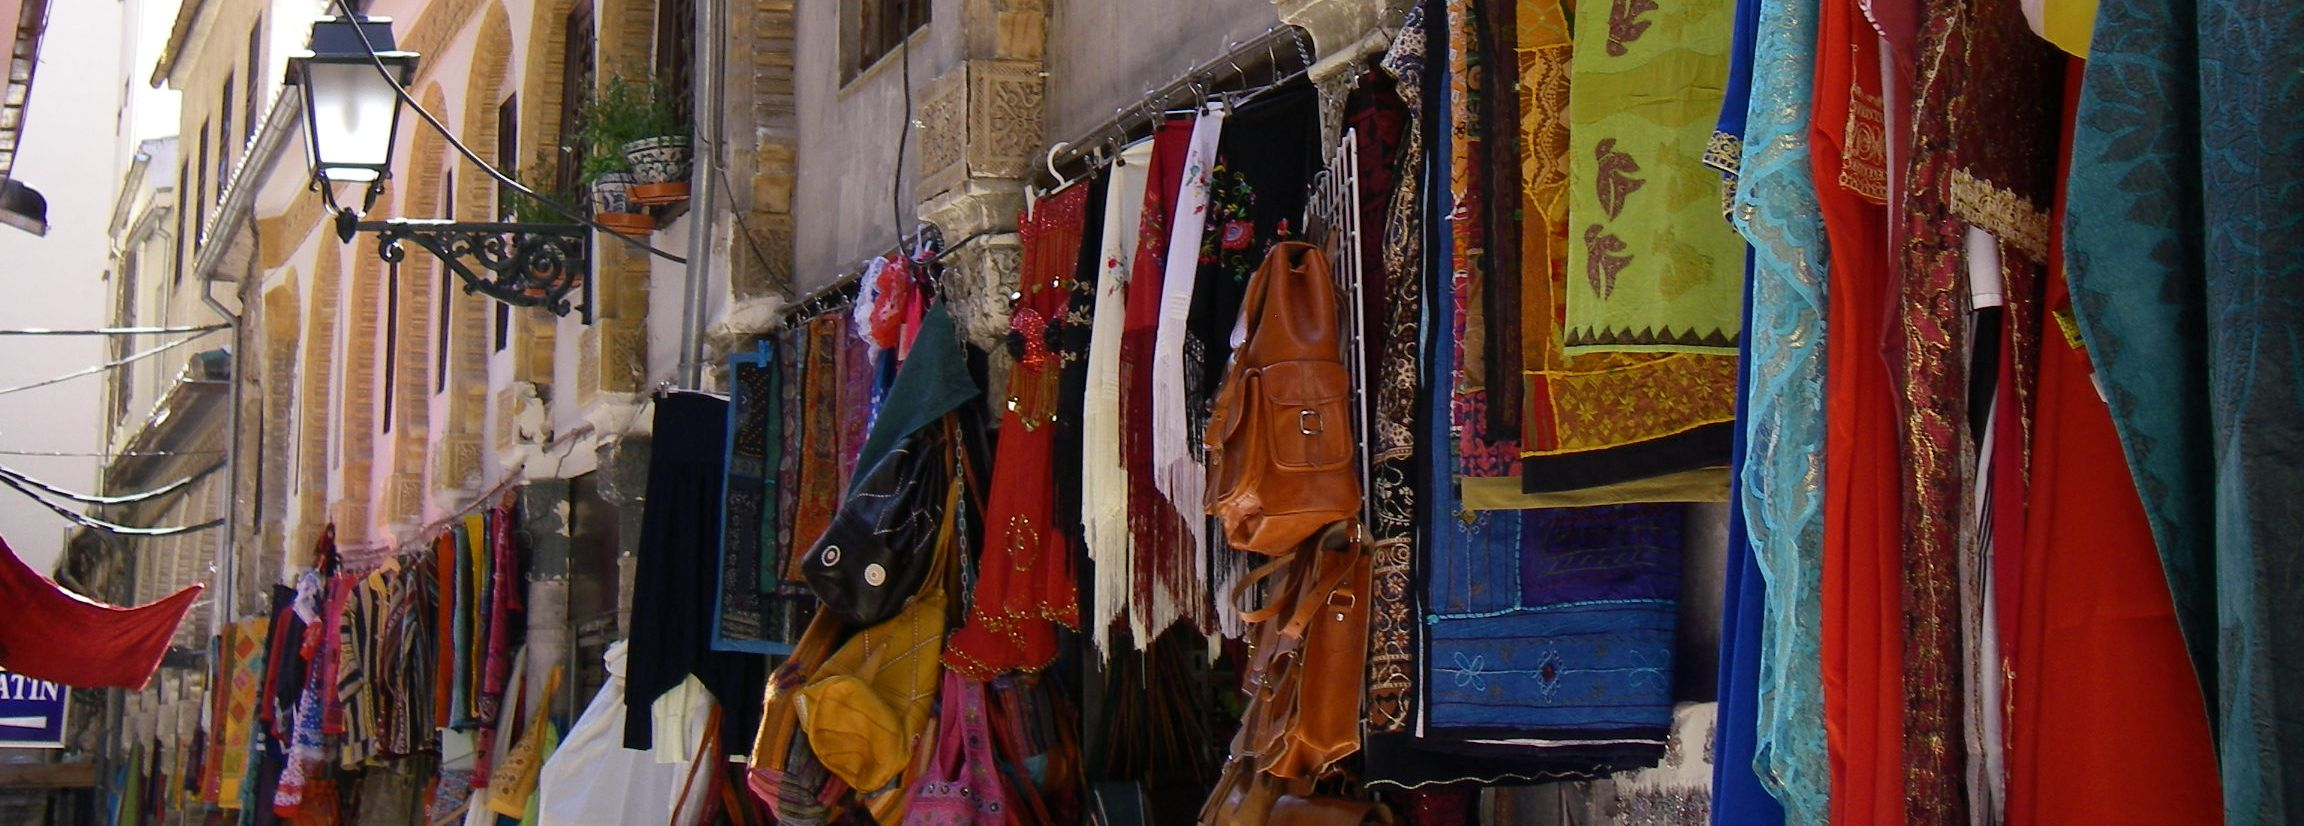 Clothing Market in Granada